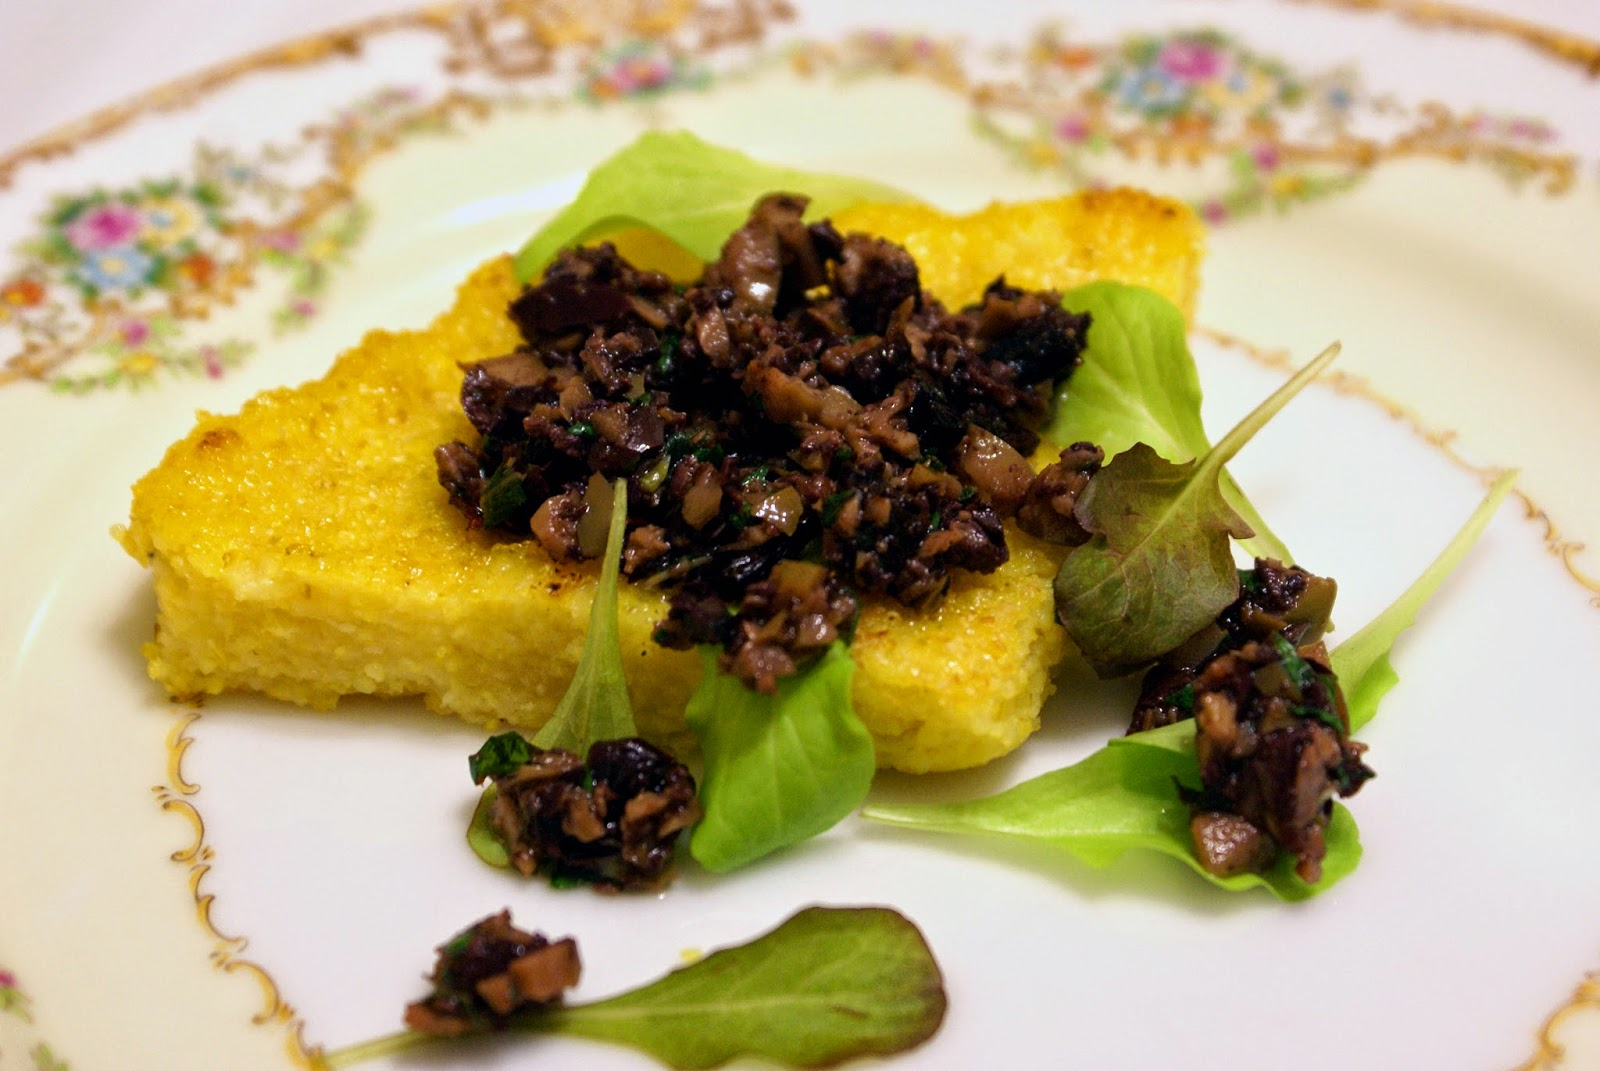 Crispy Polenta Wedges with Olive Tapenade